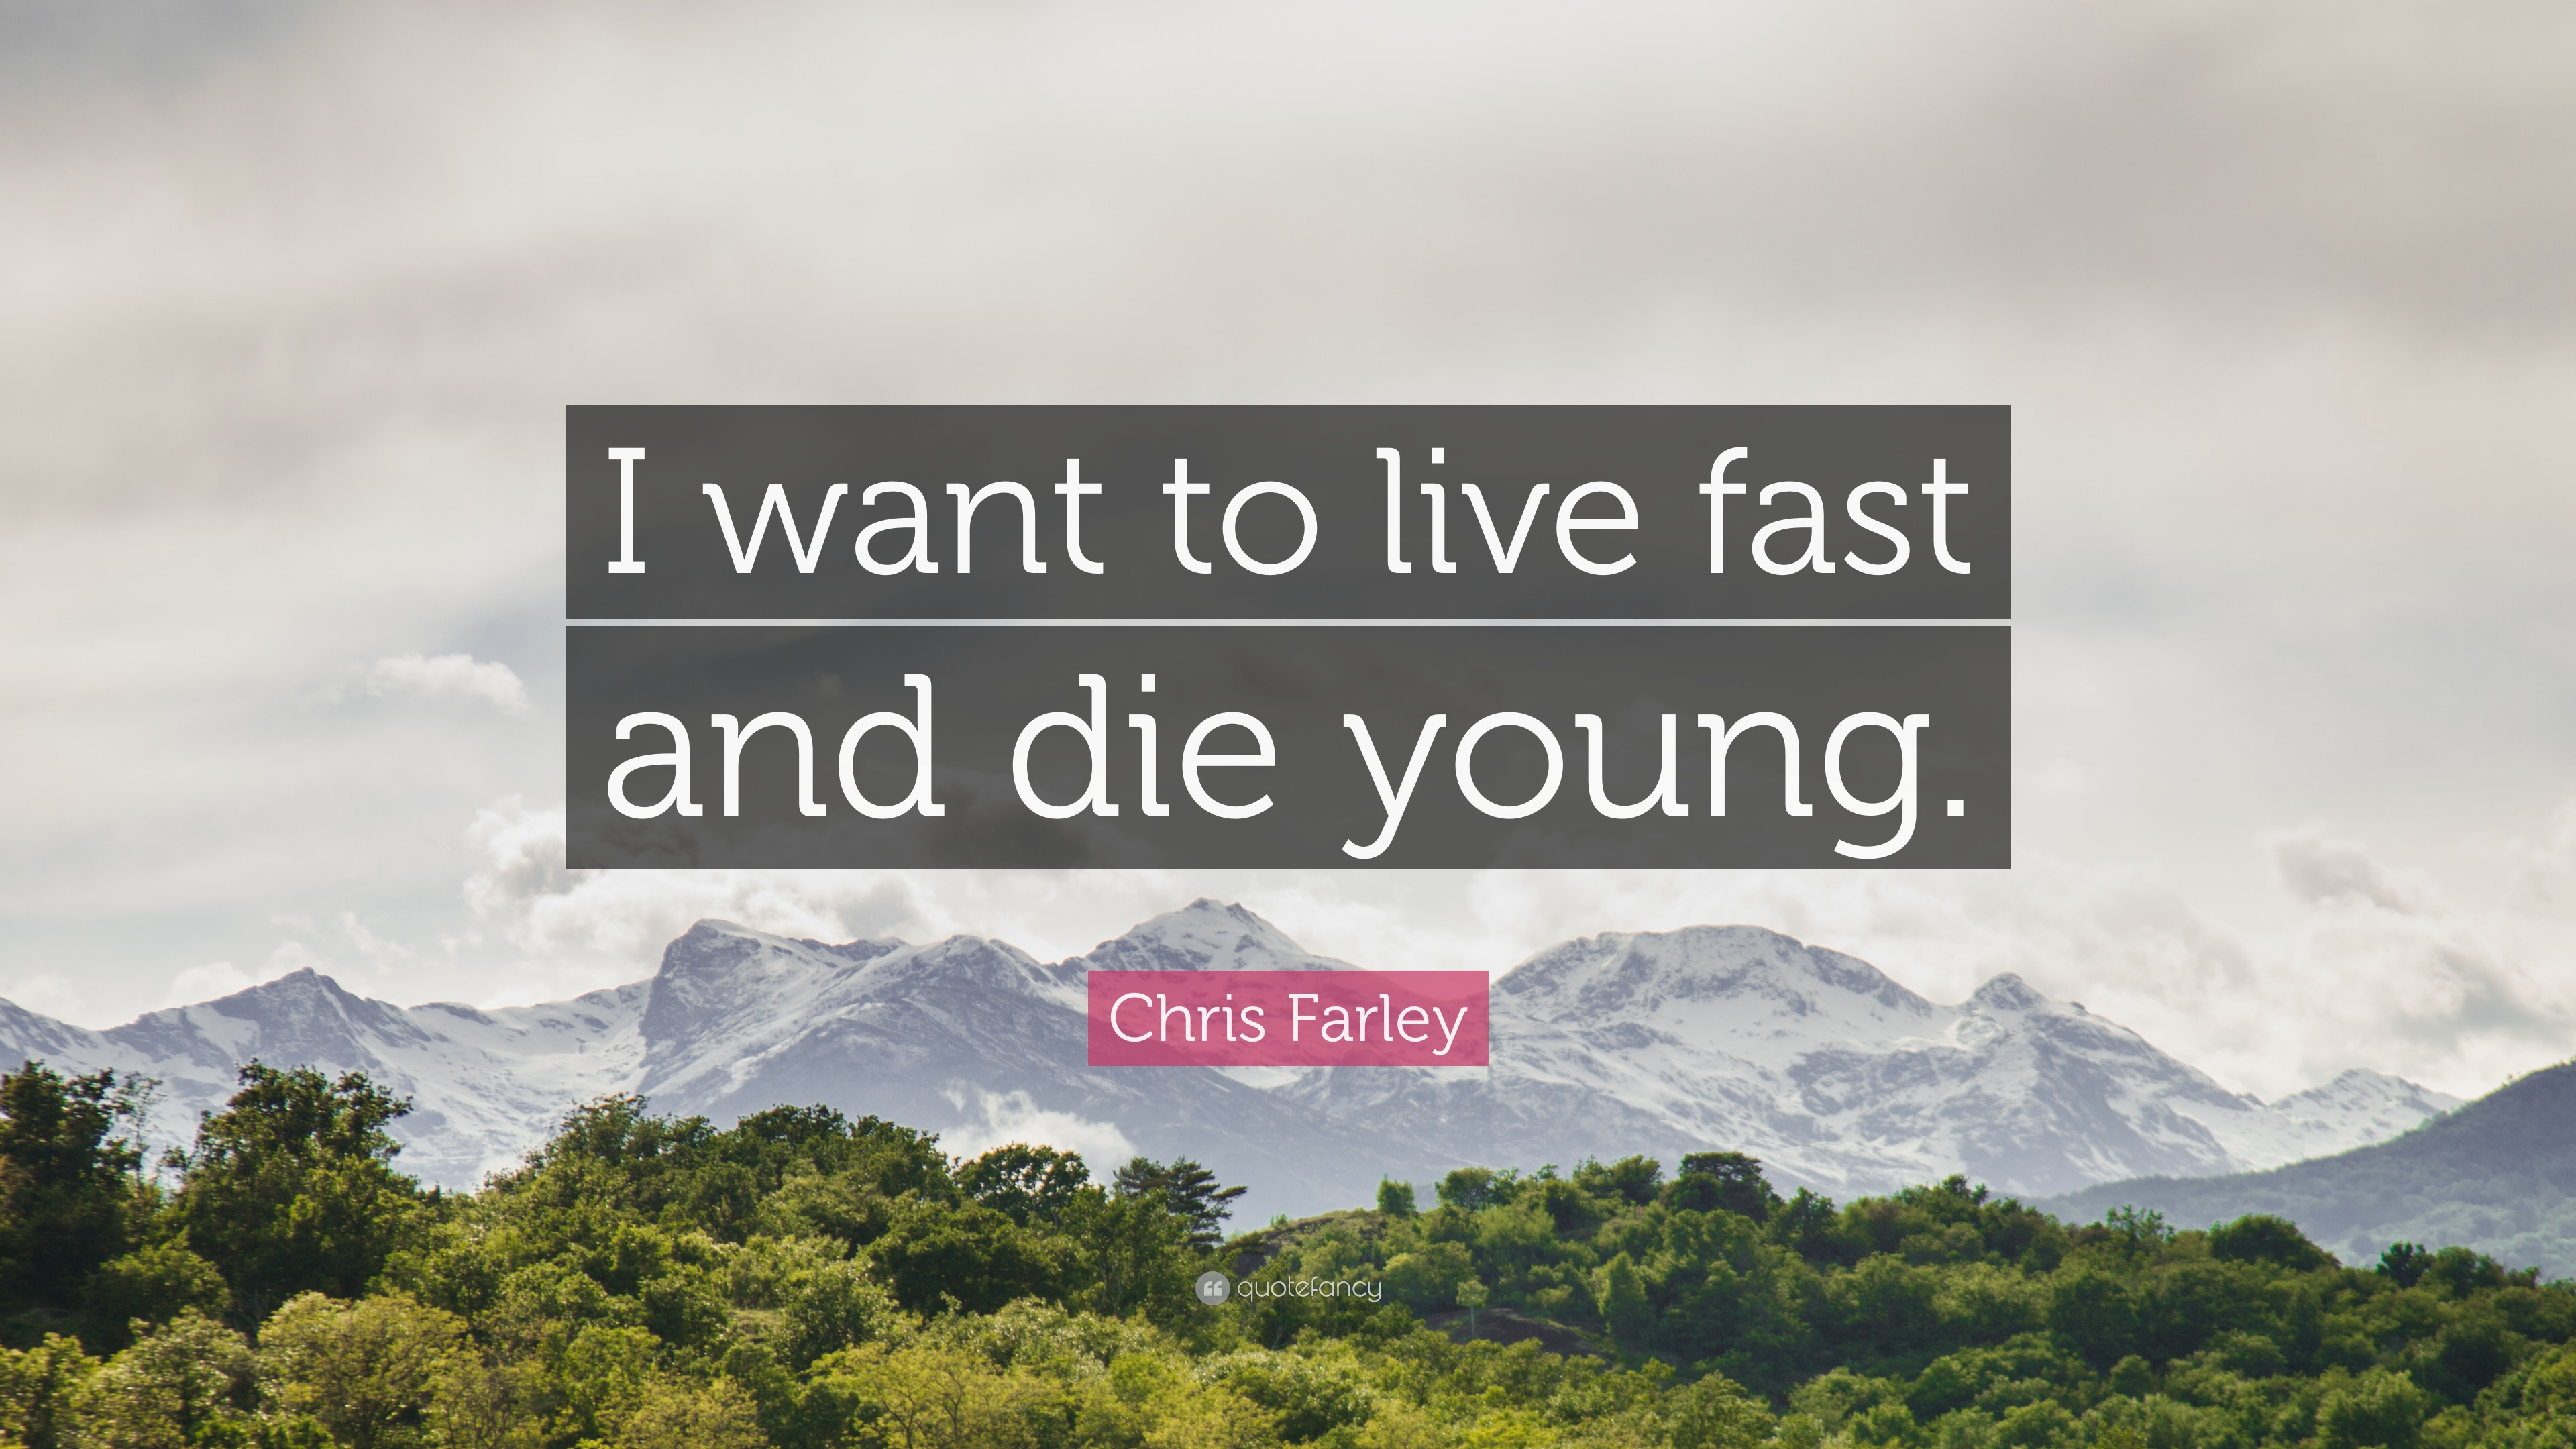 Chris Farley Quotes | Chris Farley Quote I Want To Live Fast And Die Young 7